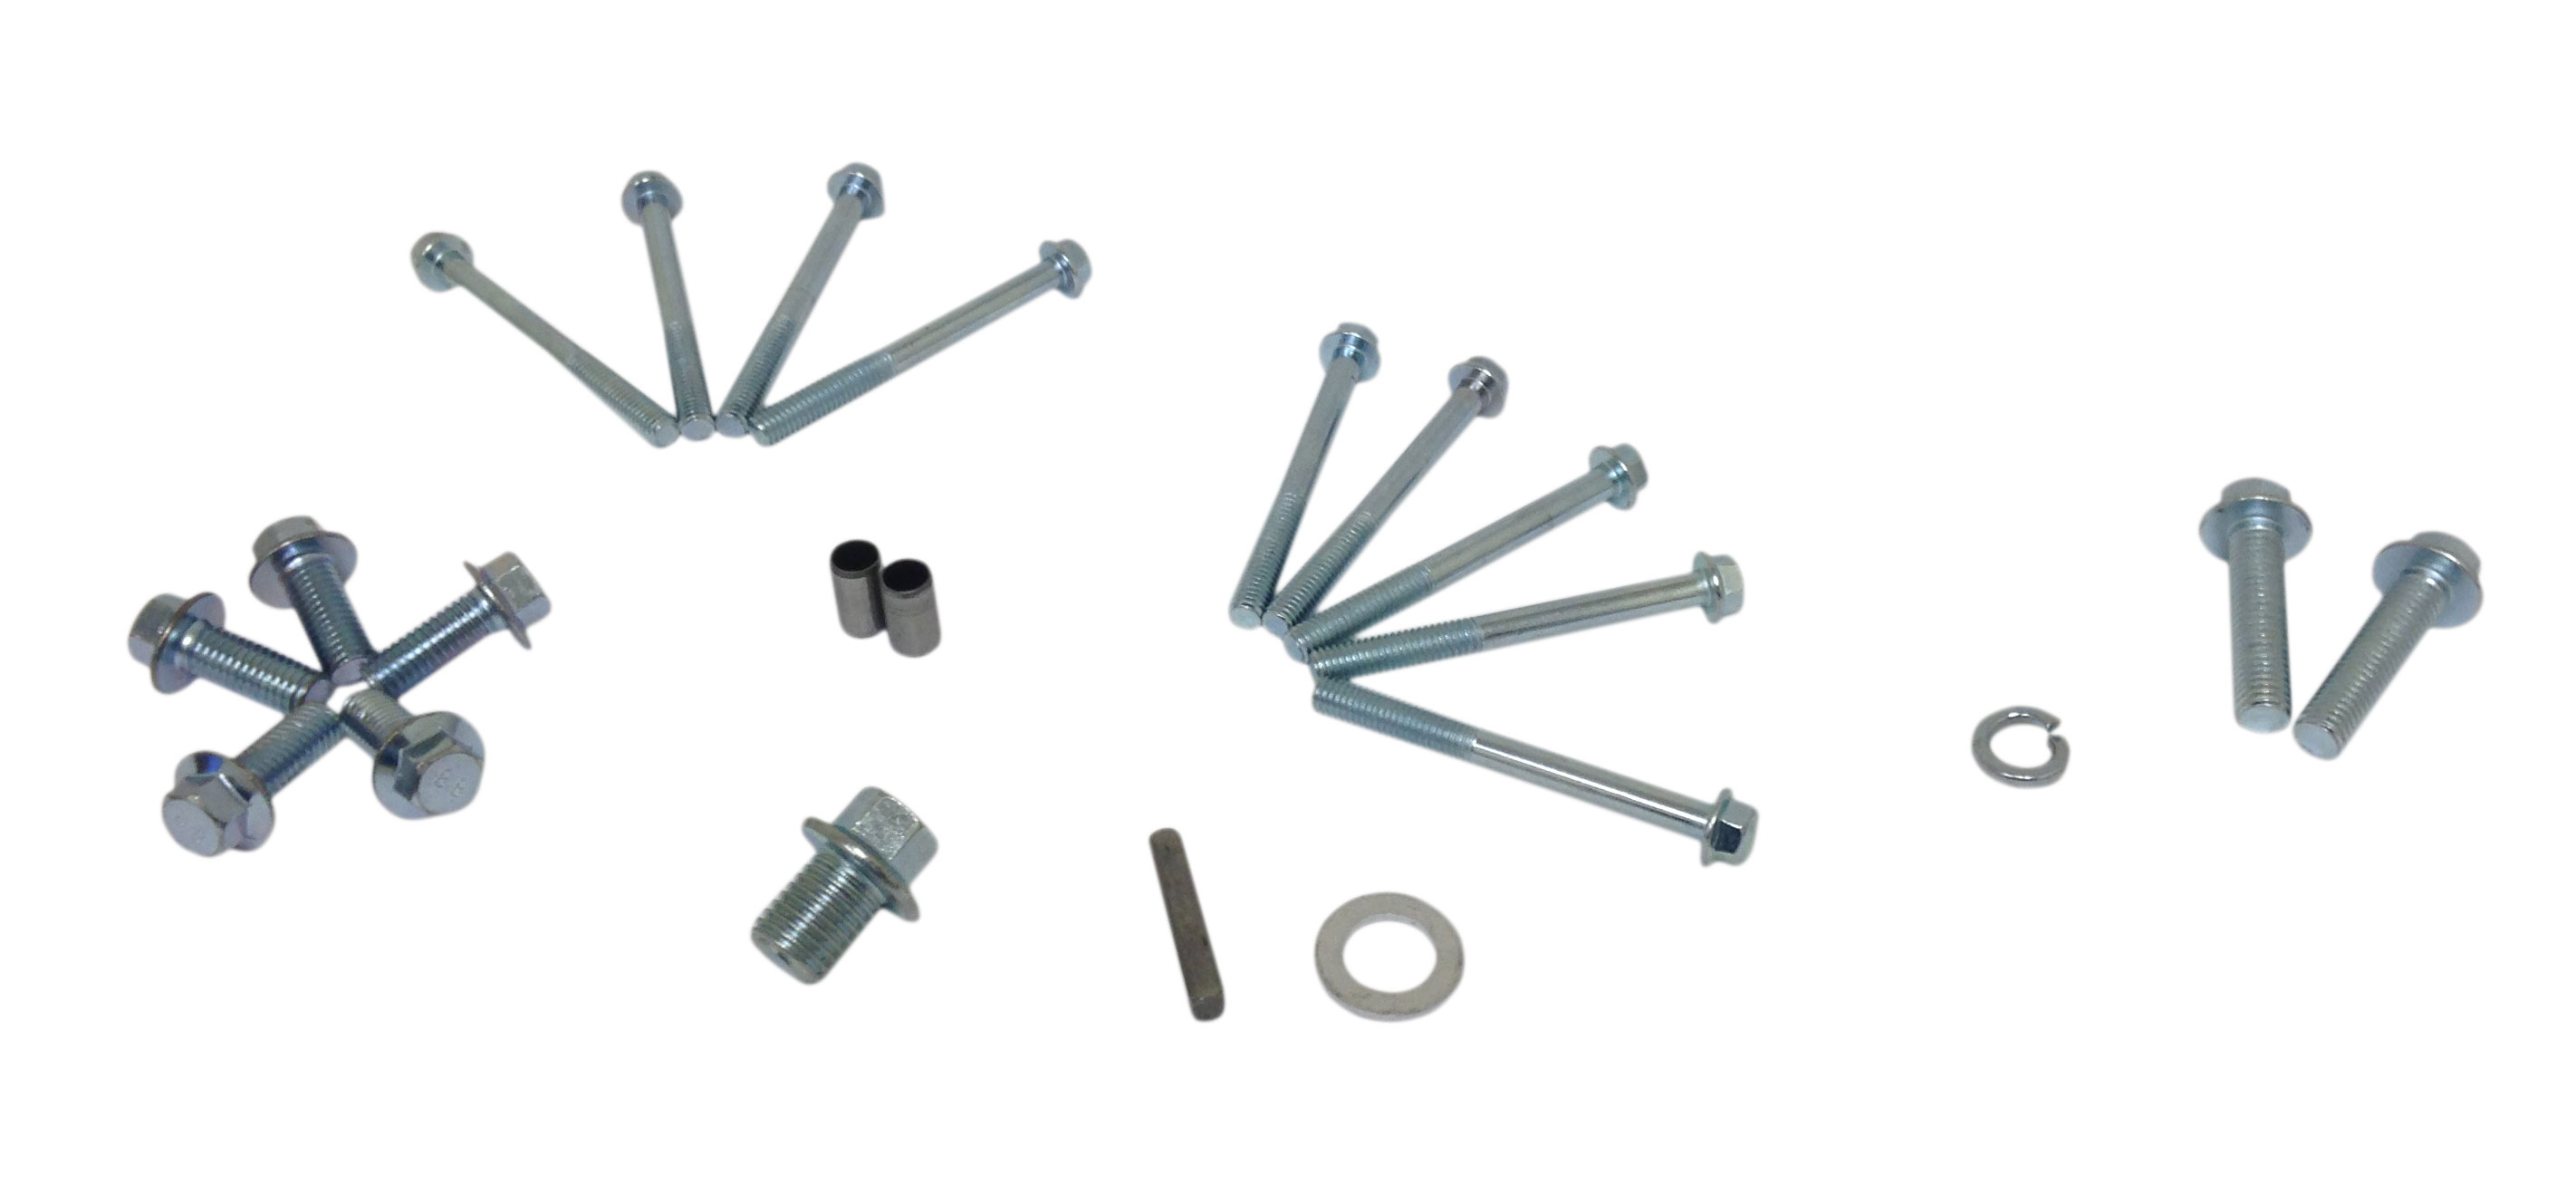 Screw and Key Kit for 2:1 Reduction Gearbox for Honda 6 5HP GX200 Engine |  AT1211-HD200-00 | BMI Karts And Parts